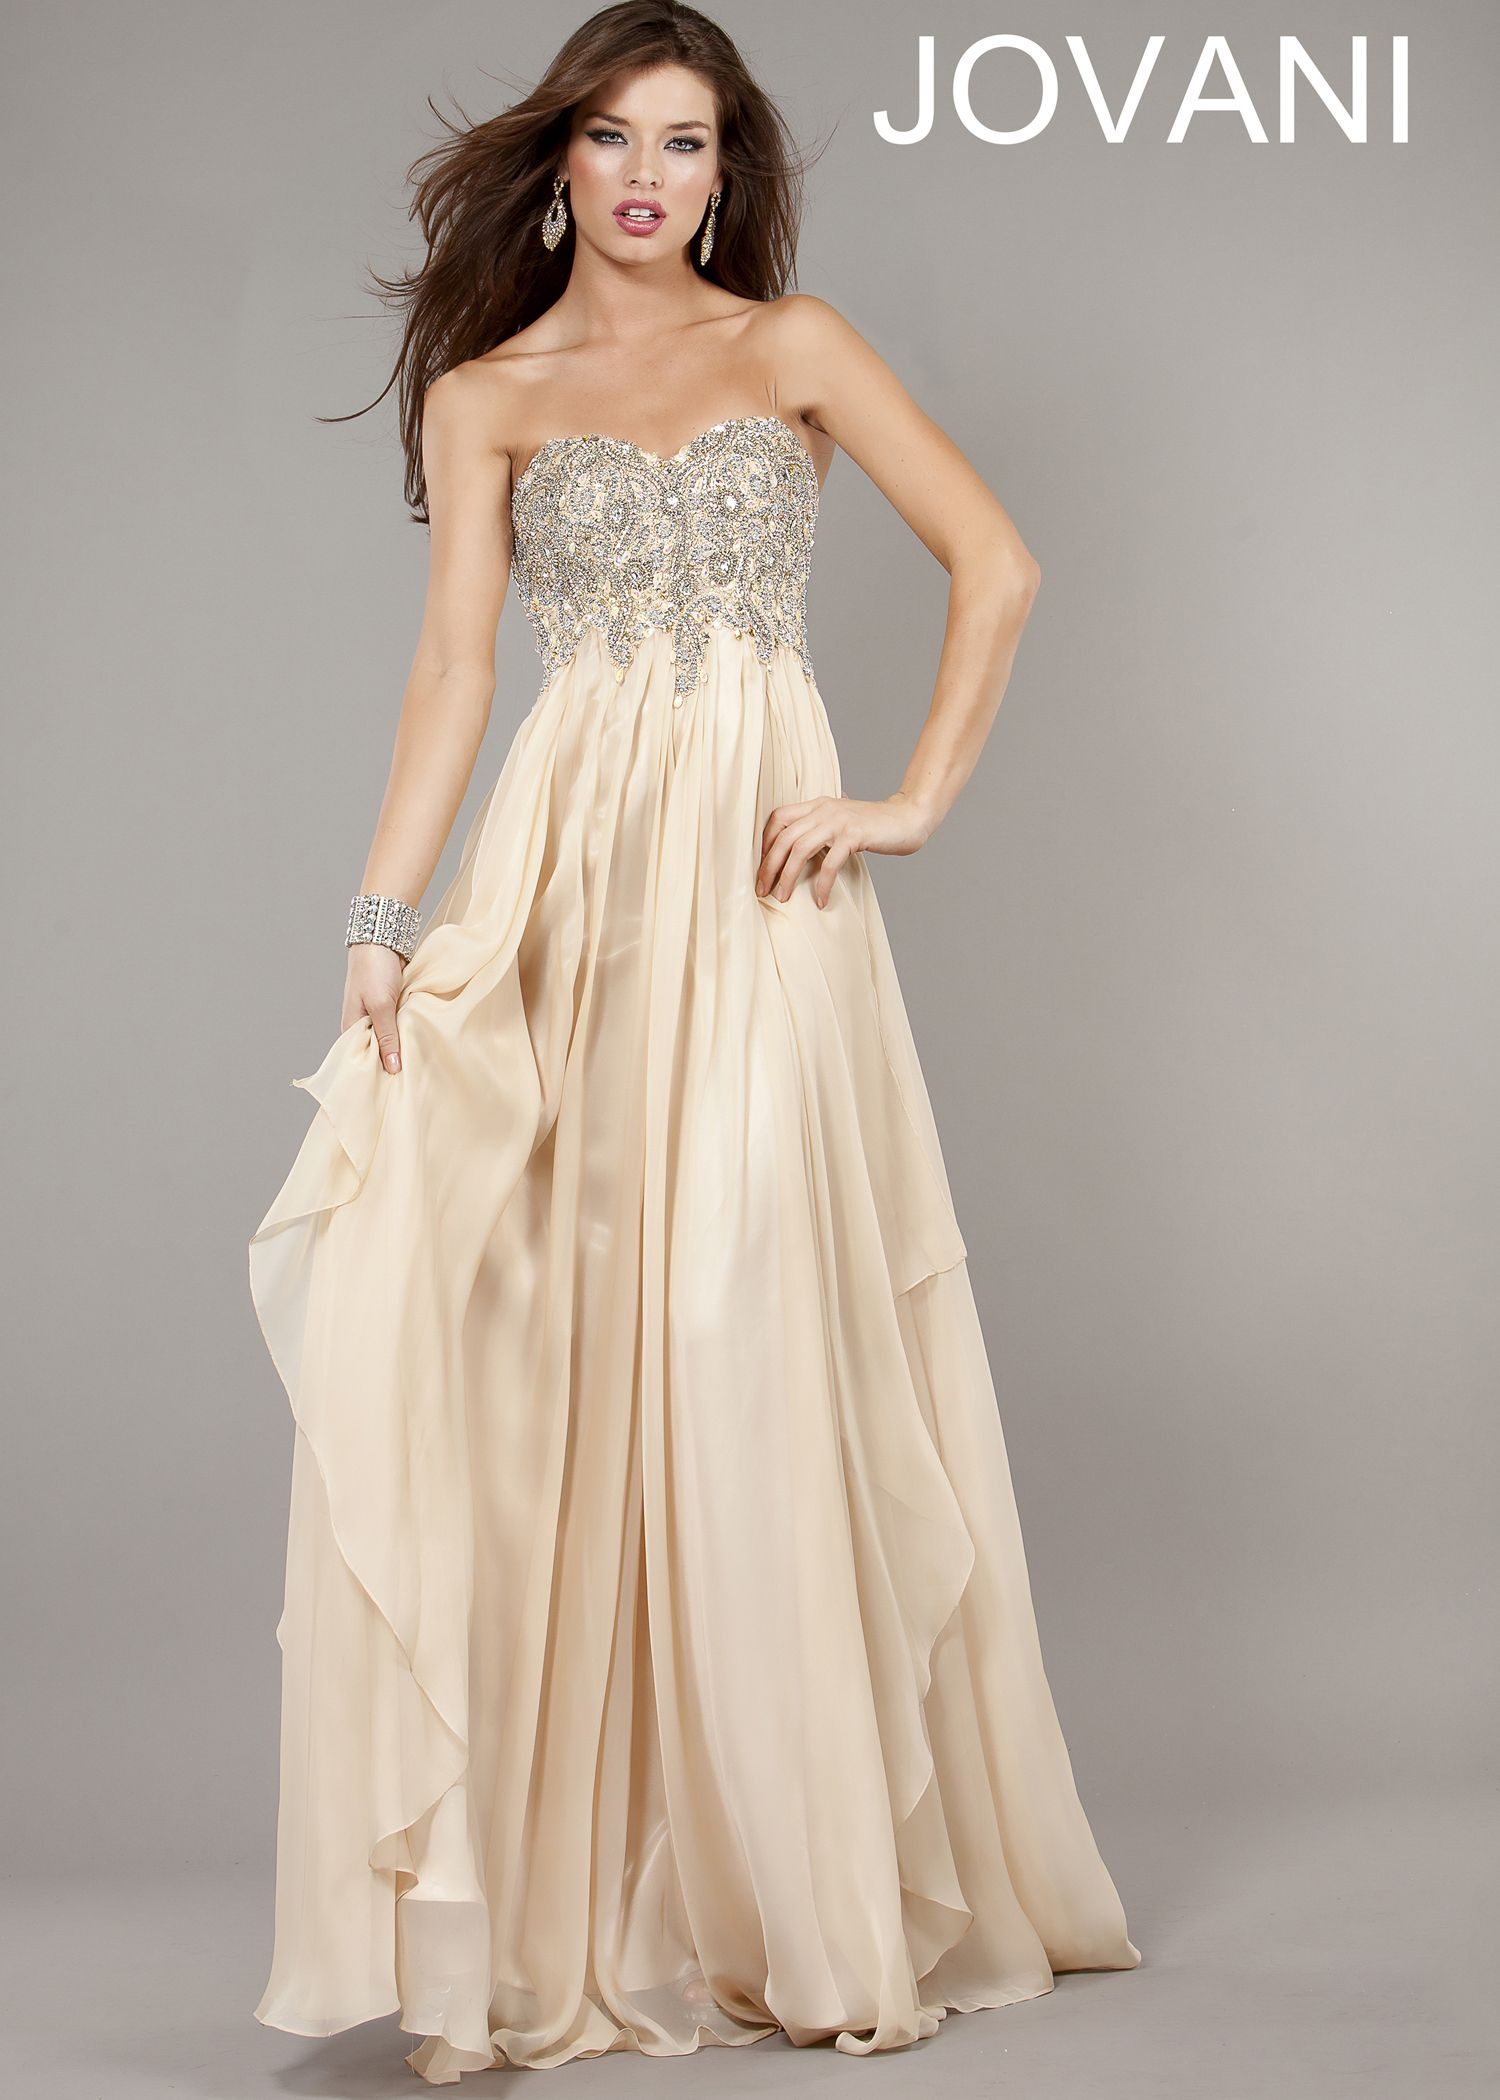 Classy Strapless Nude Evening Gown - Nude Beaded Prom Dress ...